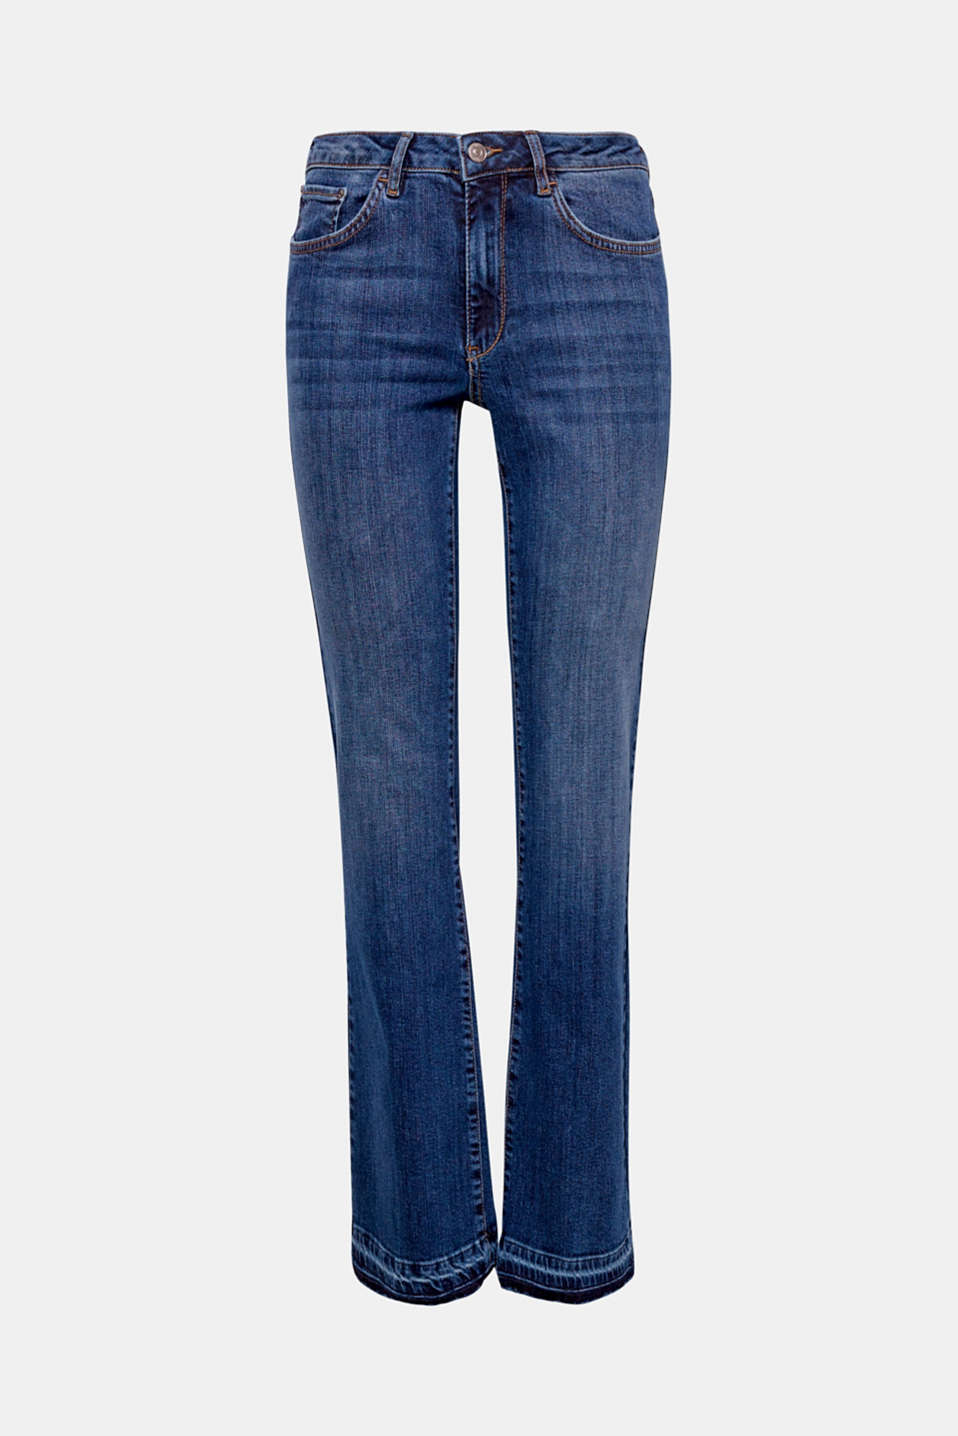 All-time favourite: these slim-fitting bootcut jeans are particularly casual thanks to their frayed hems!